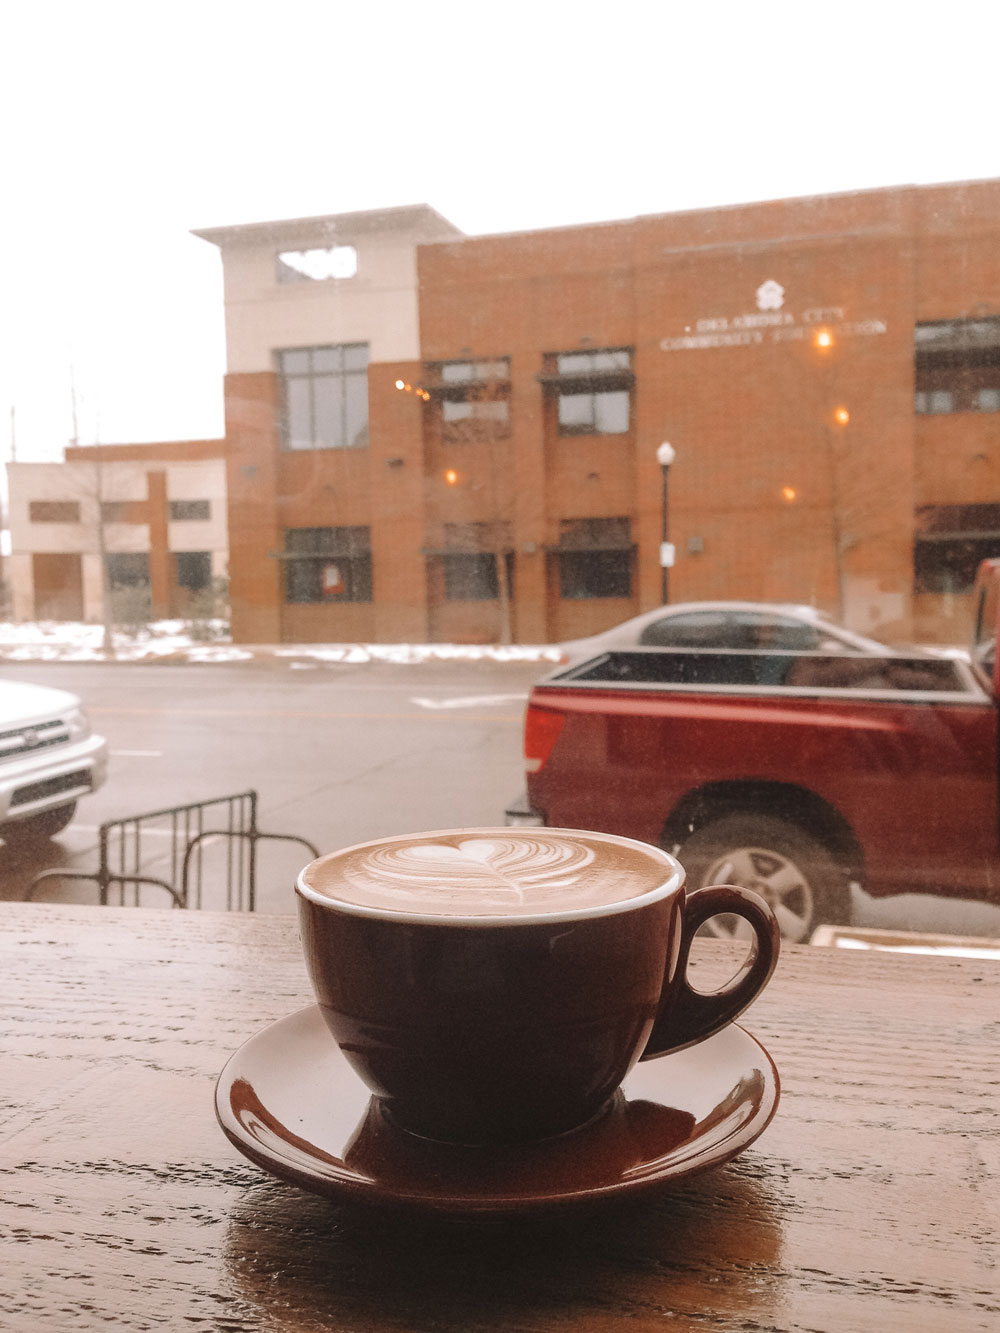 Almond Milk Lattes from Coffee Slingers in Oklahoma City's Automobile Alley District